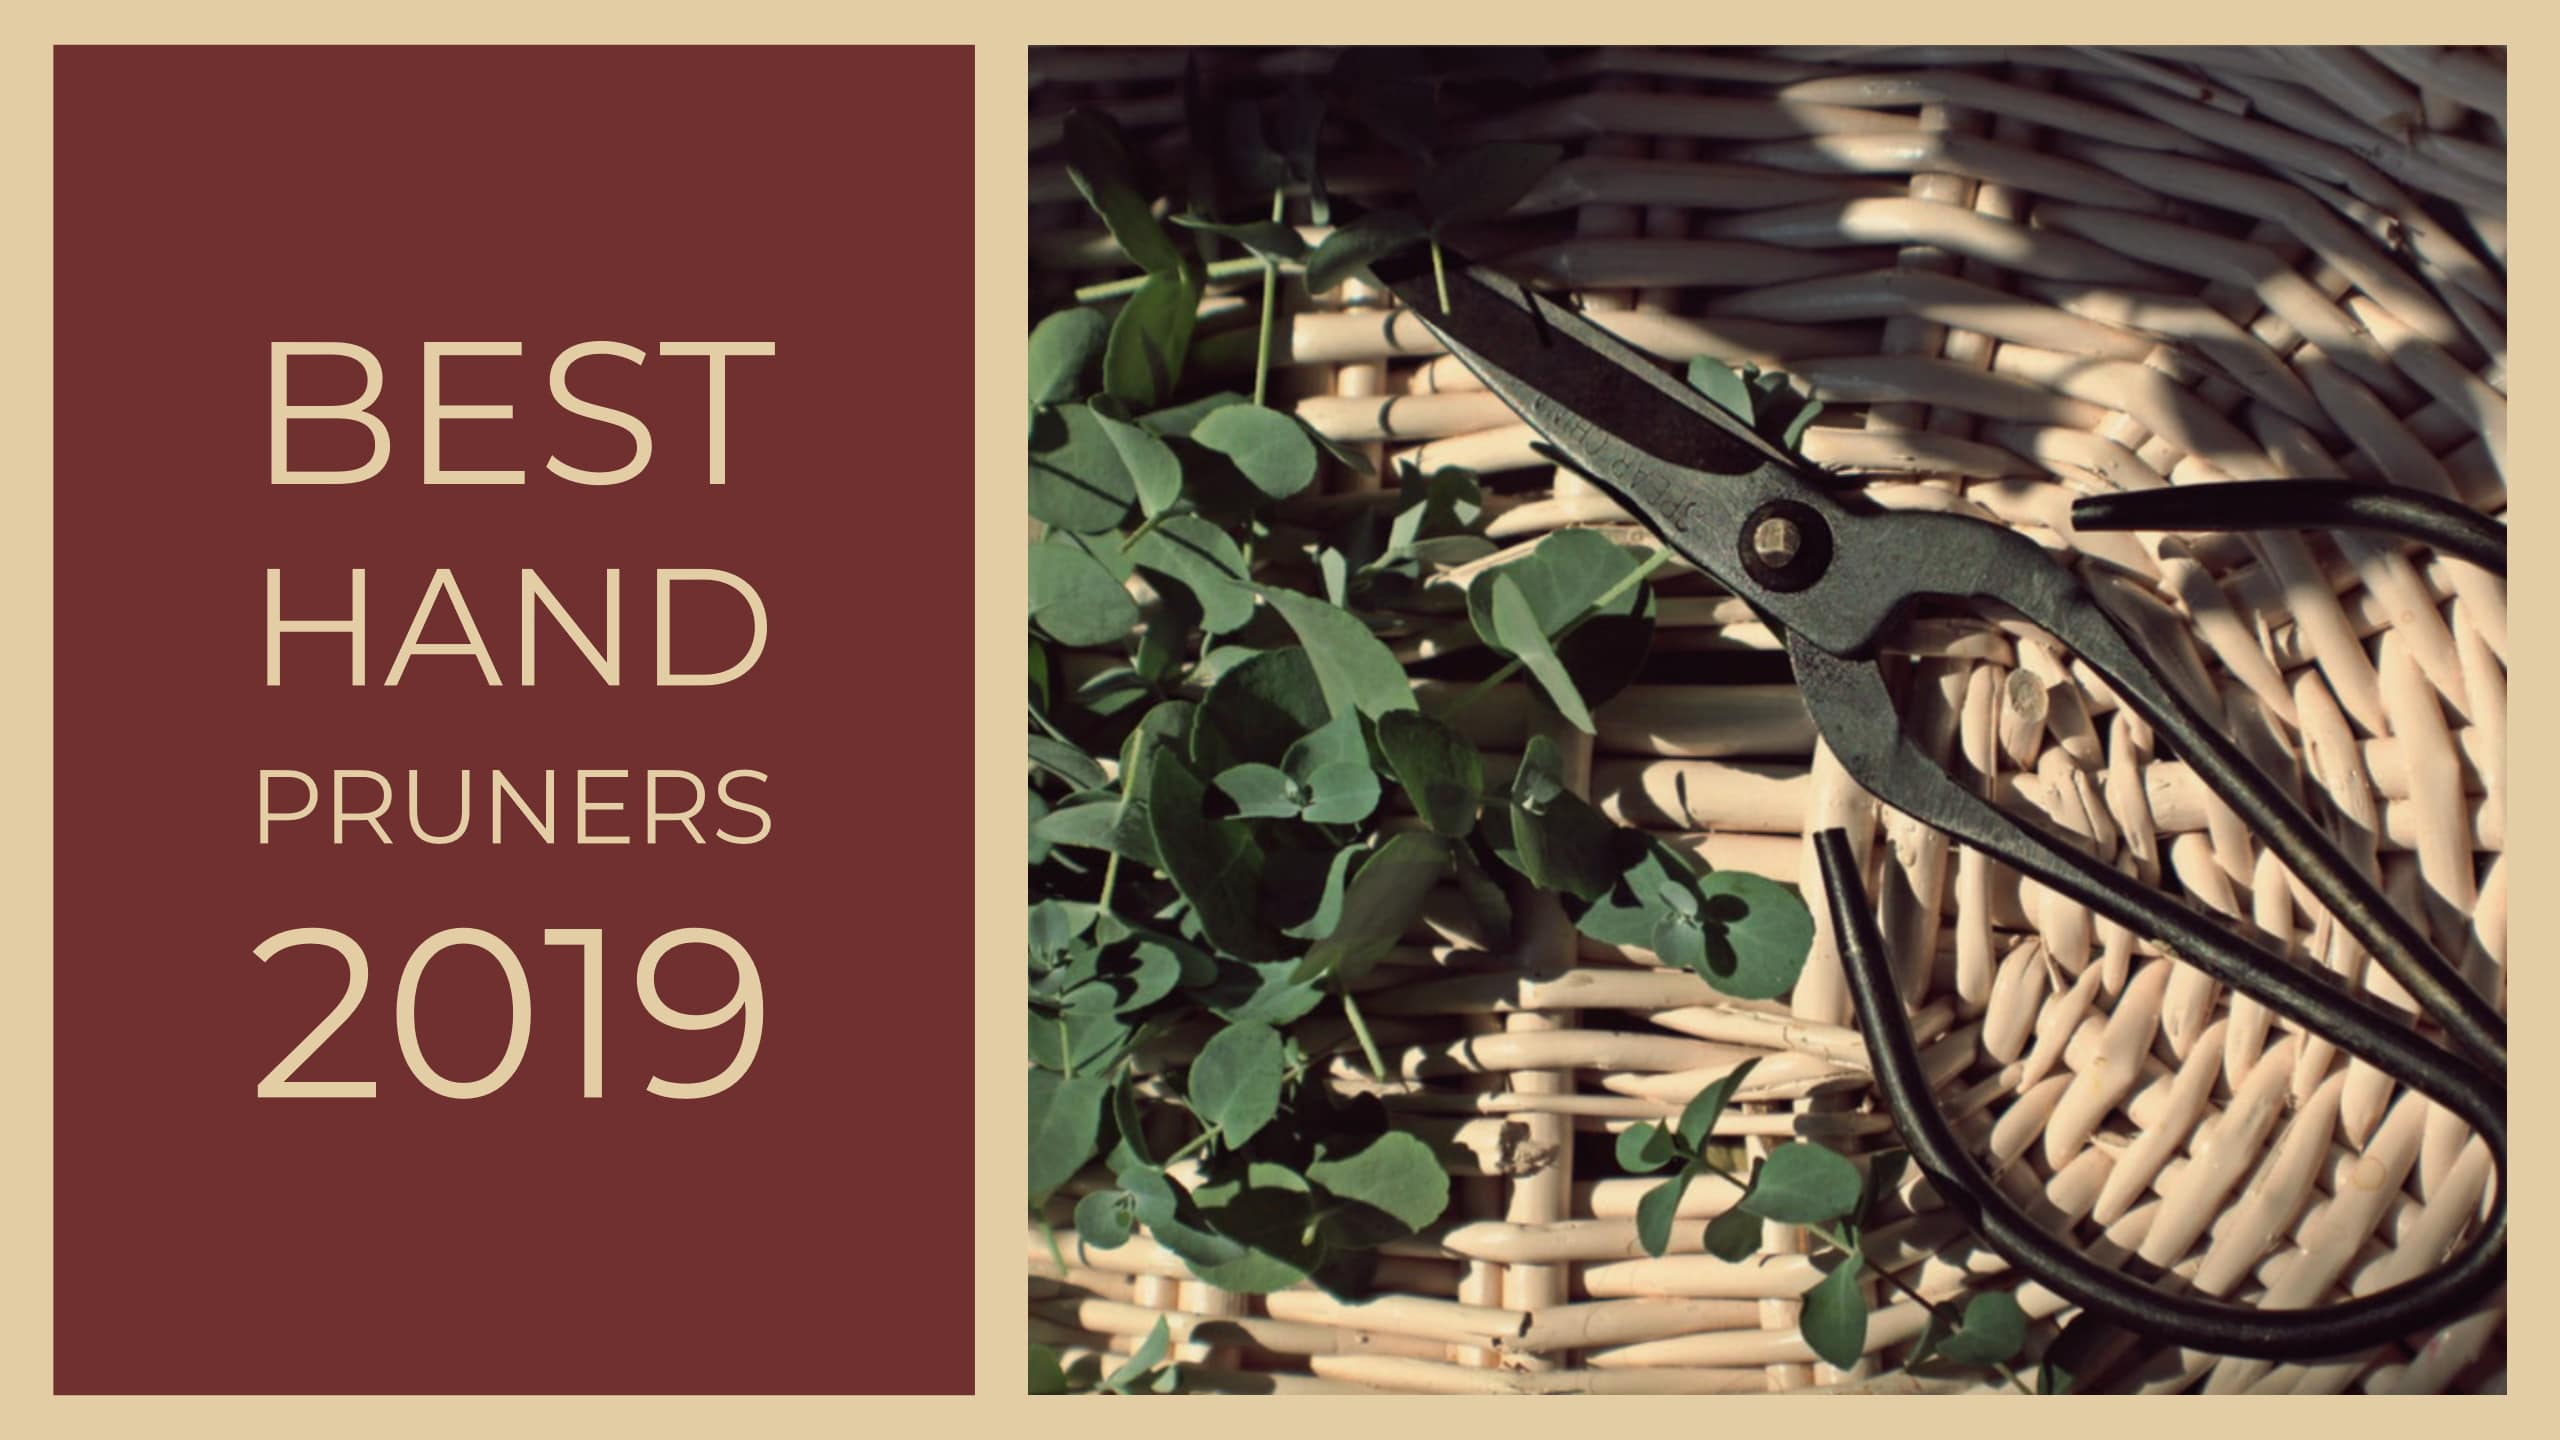 Best Hand Pruners 2020 Reviews, Ratings & Comparisons